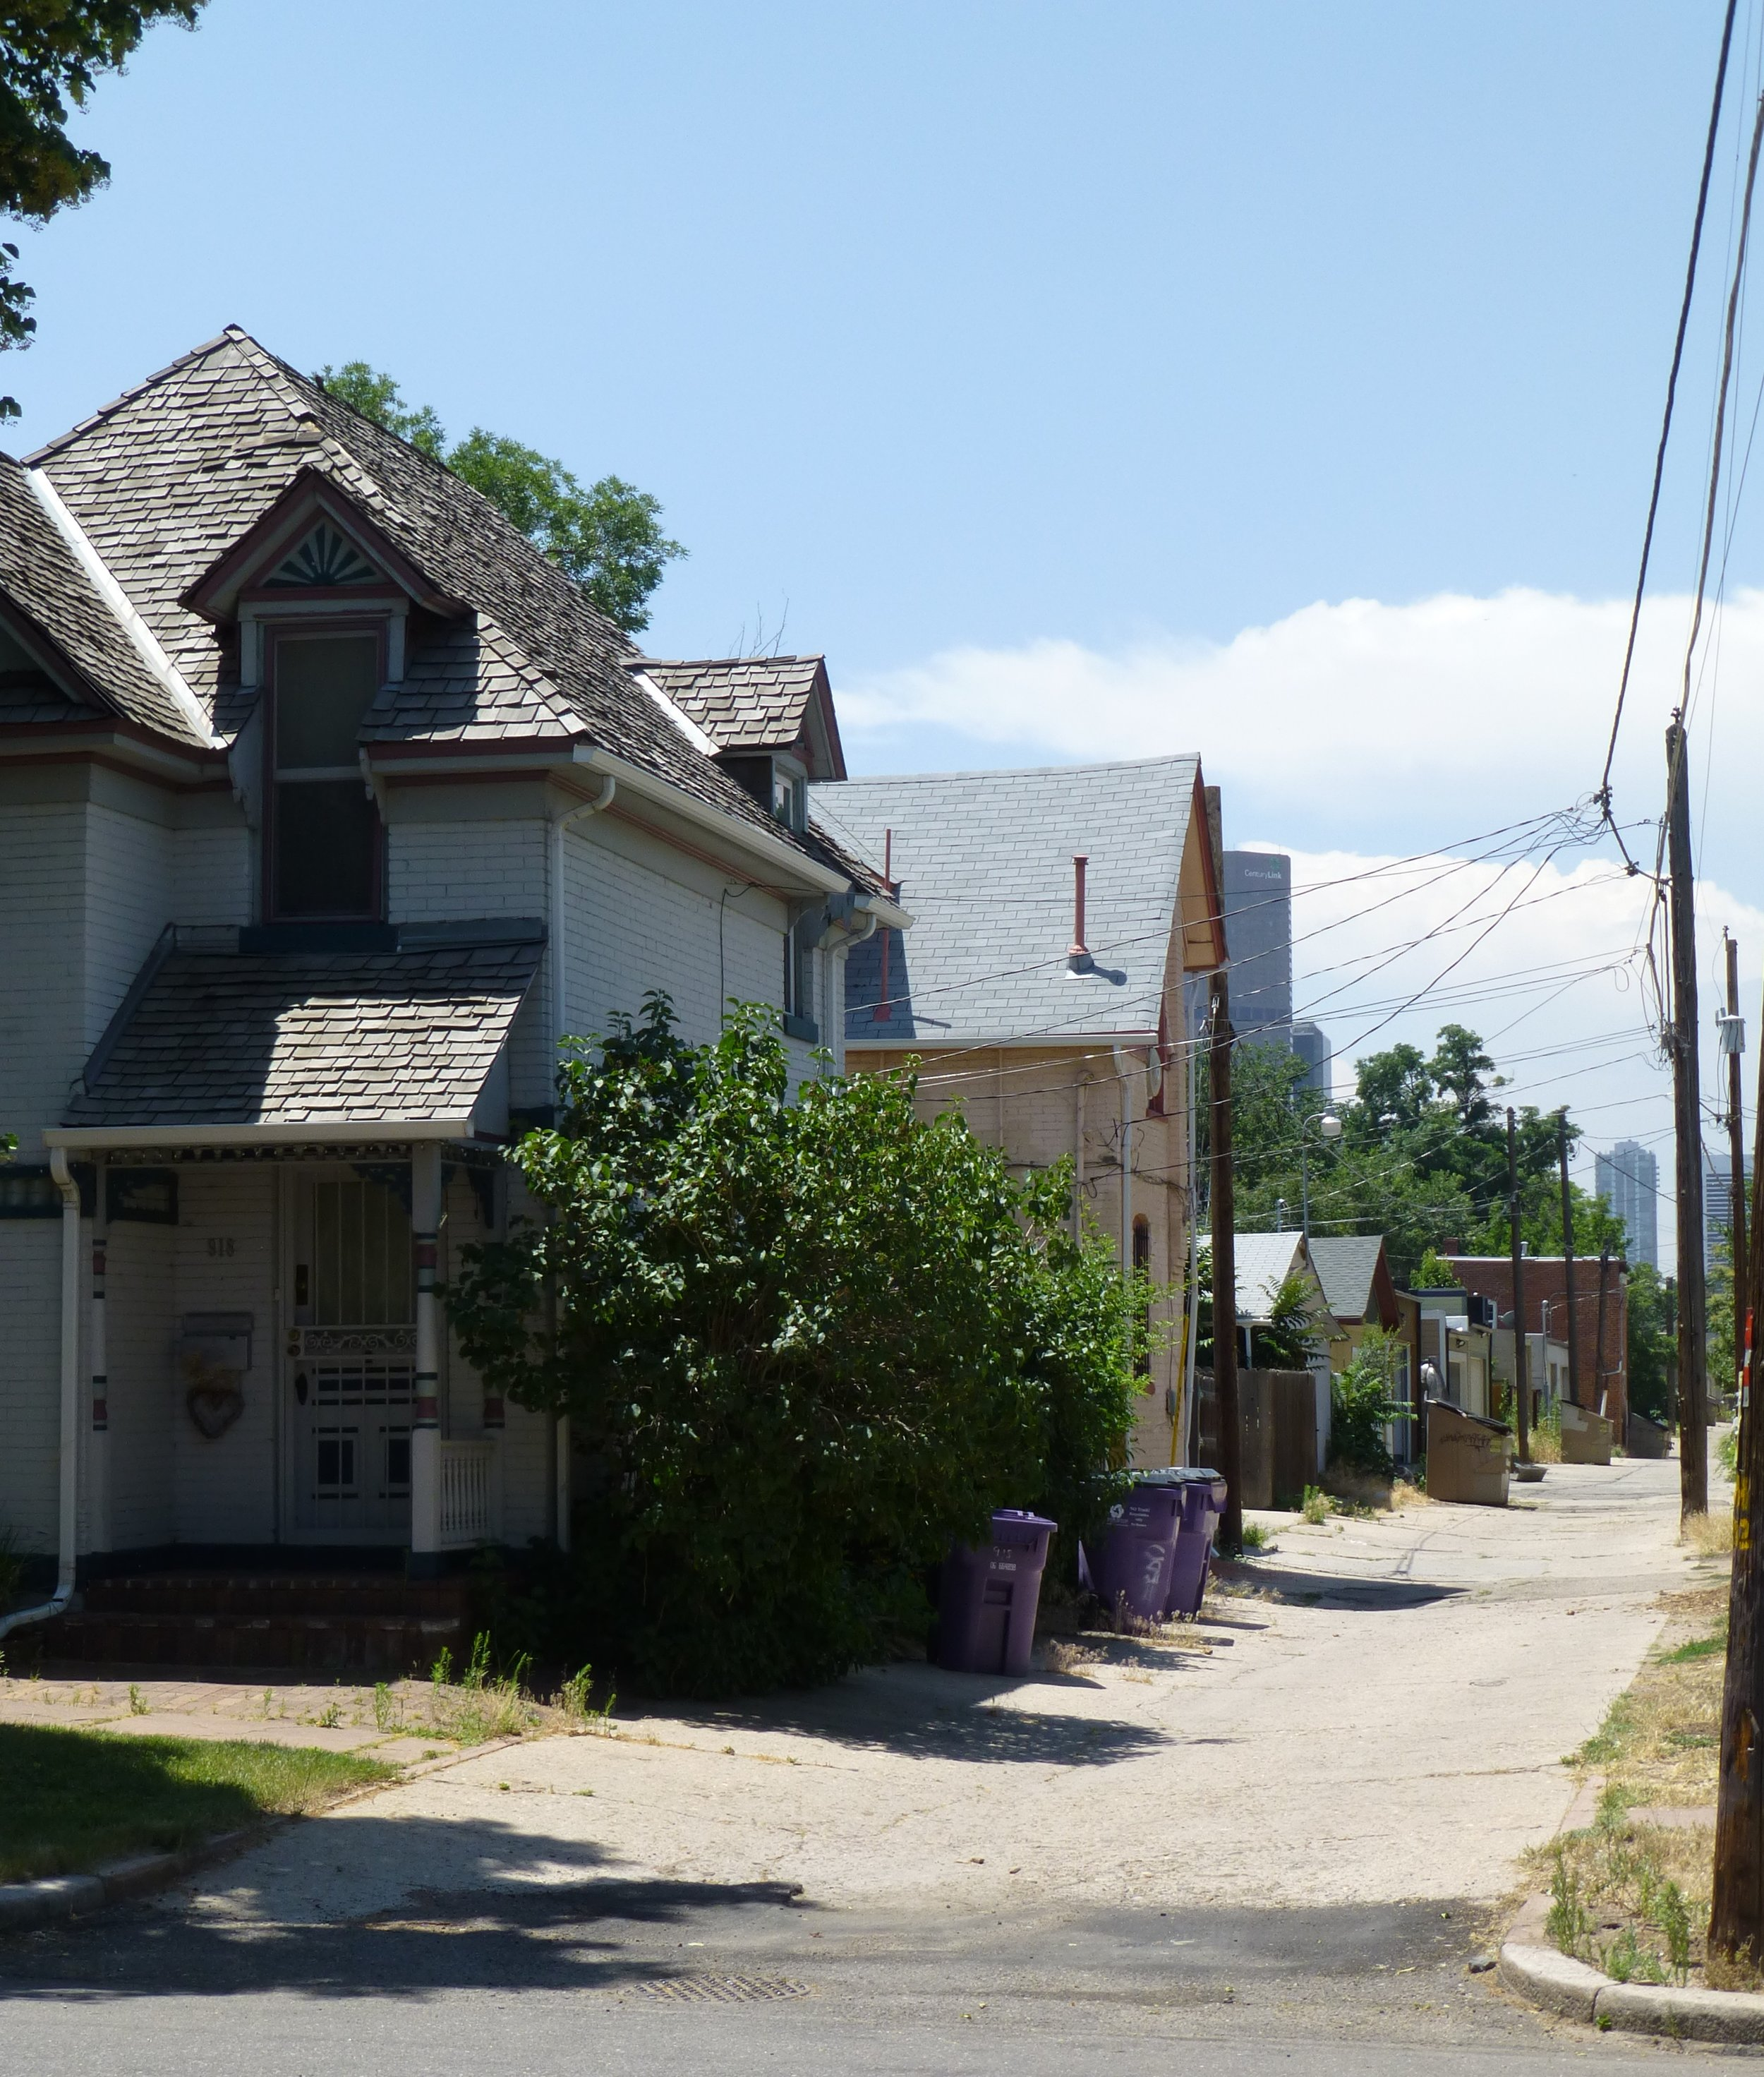 historic alley with houses, carr houses and garages.jpg